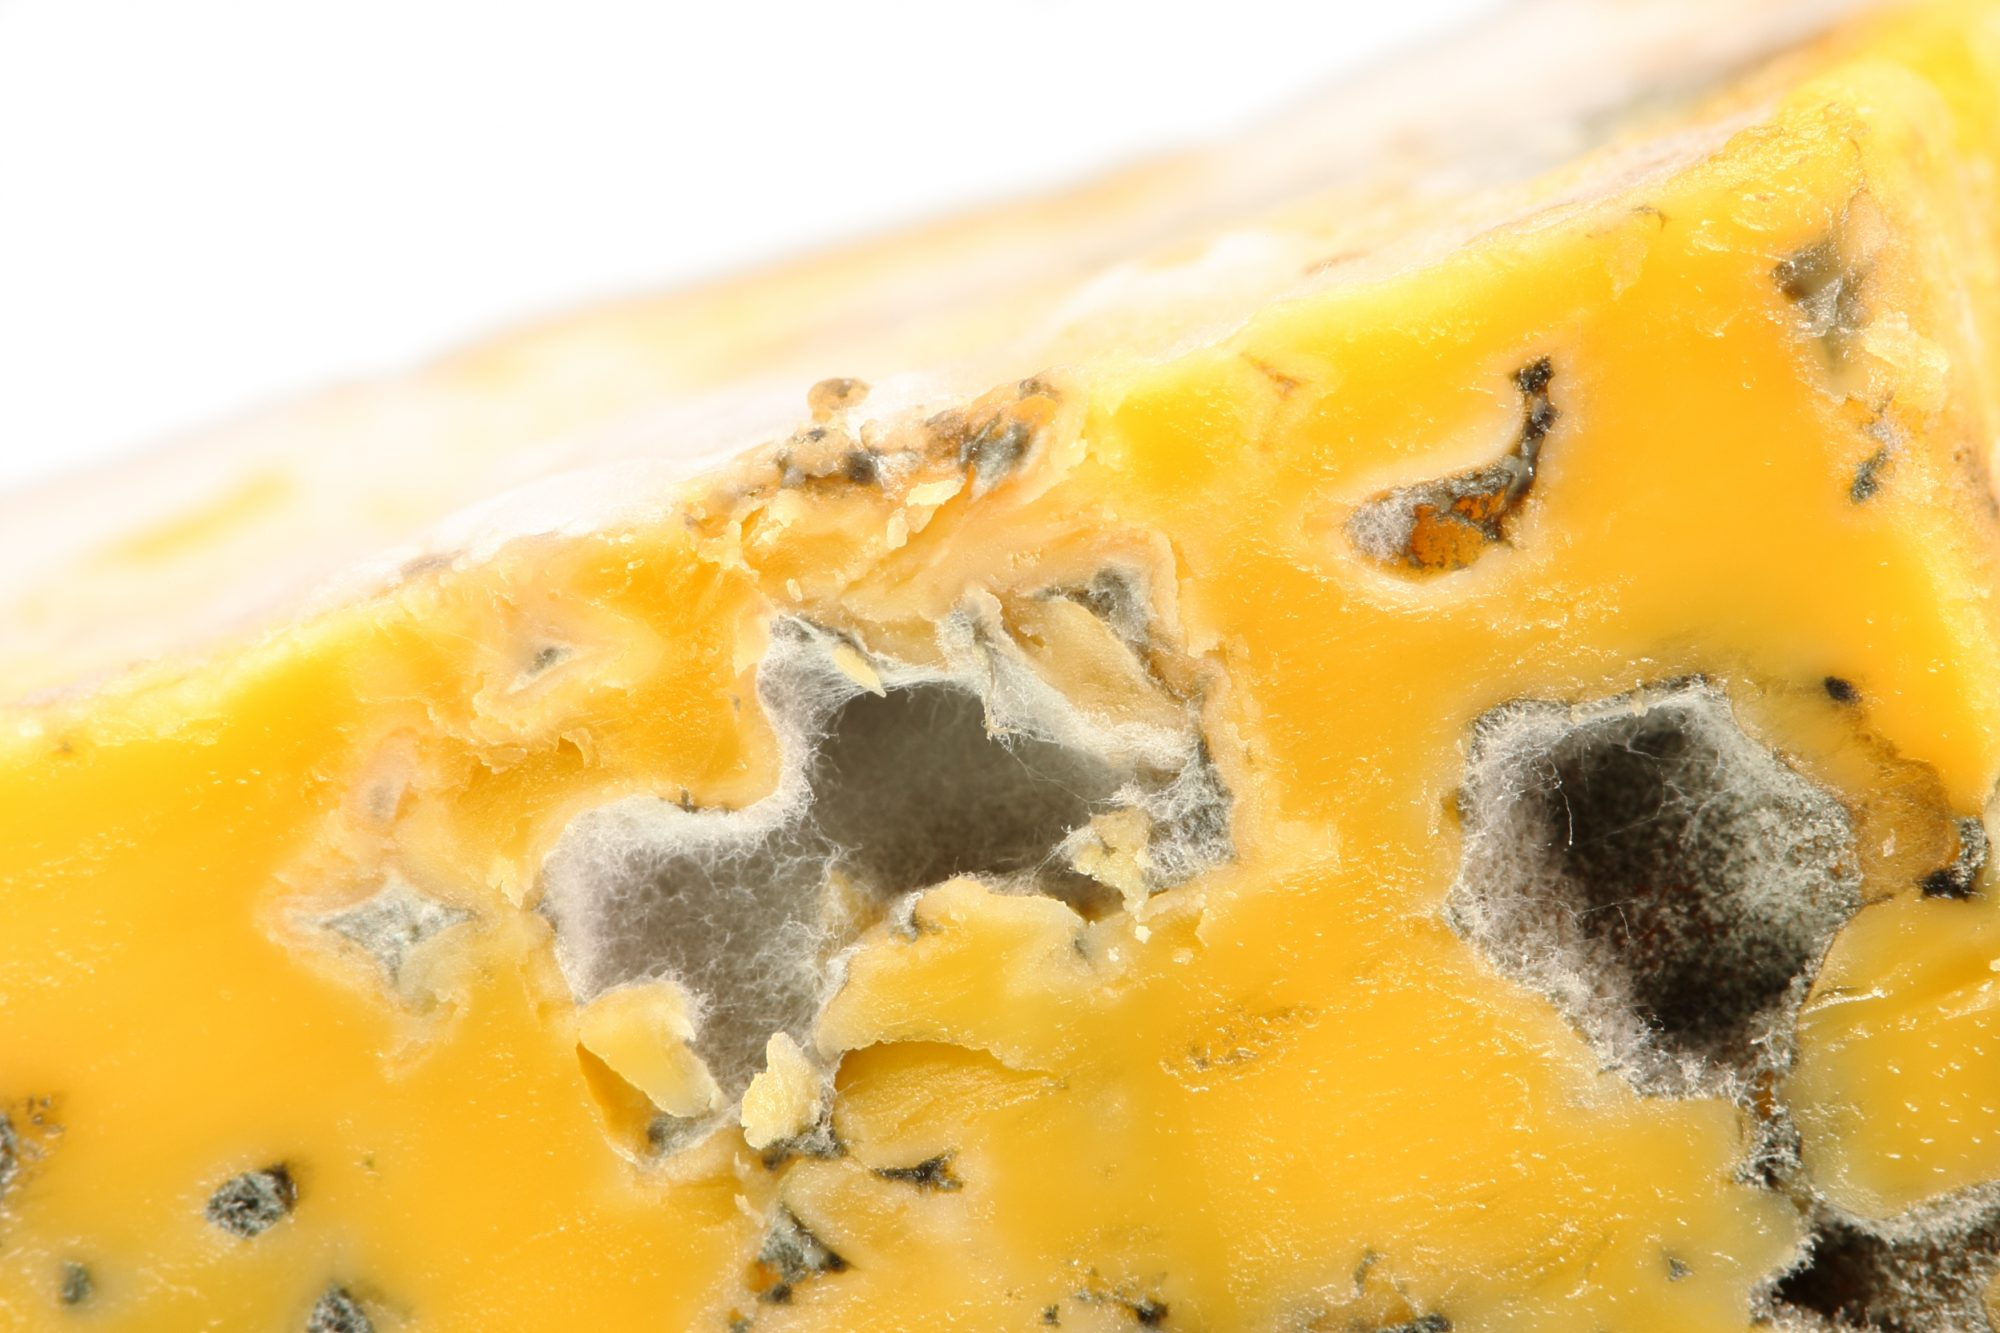 Moldy Cheese Getty 2/18/20